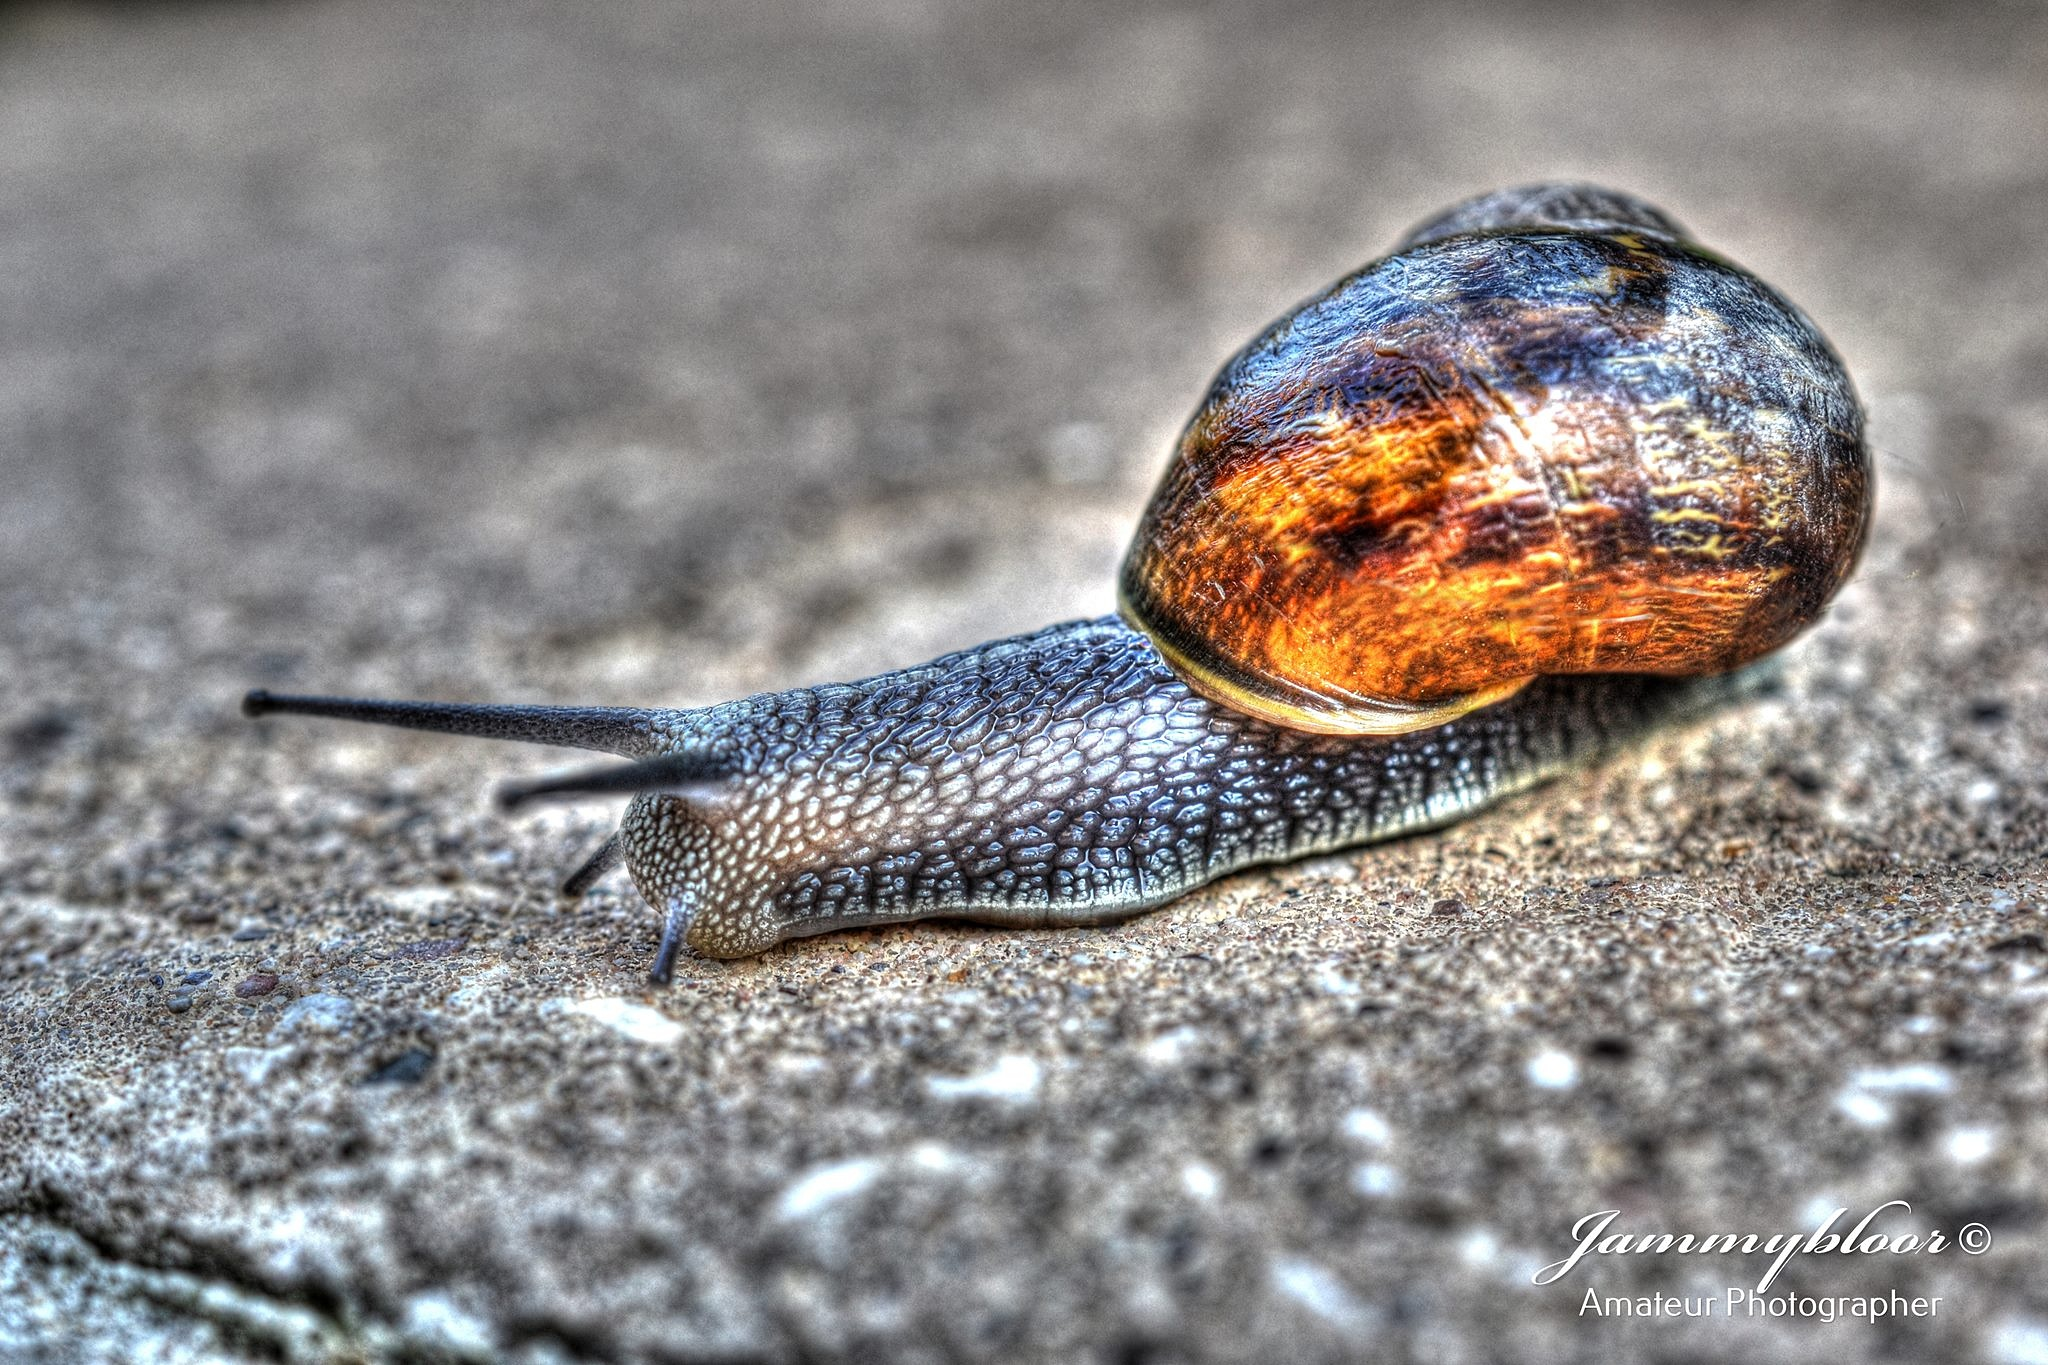 Snails Pace by jammybloor